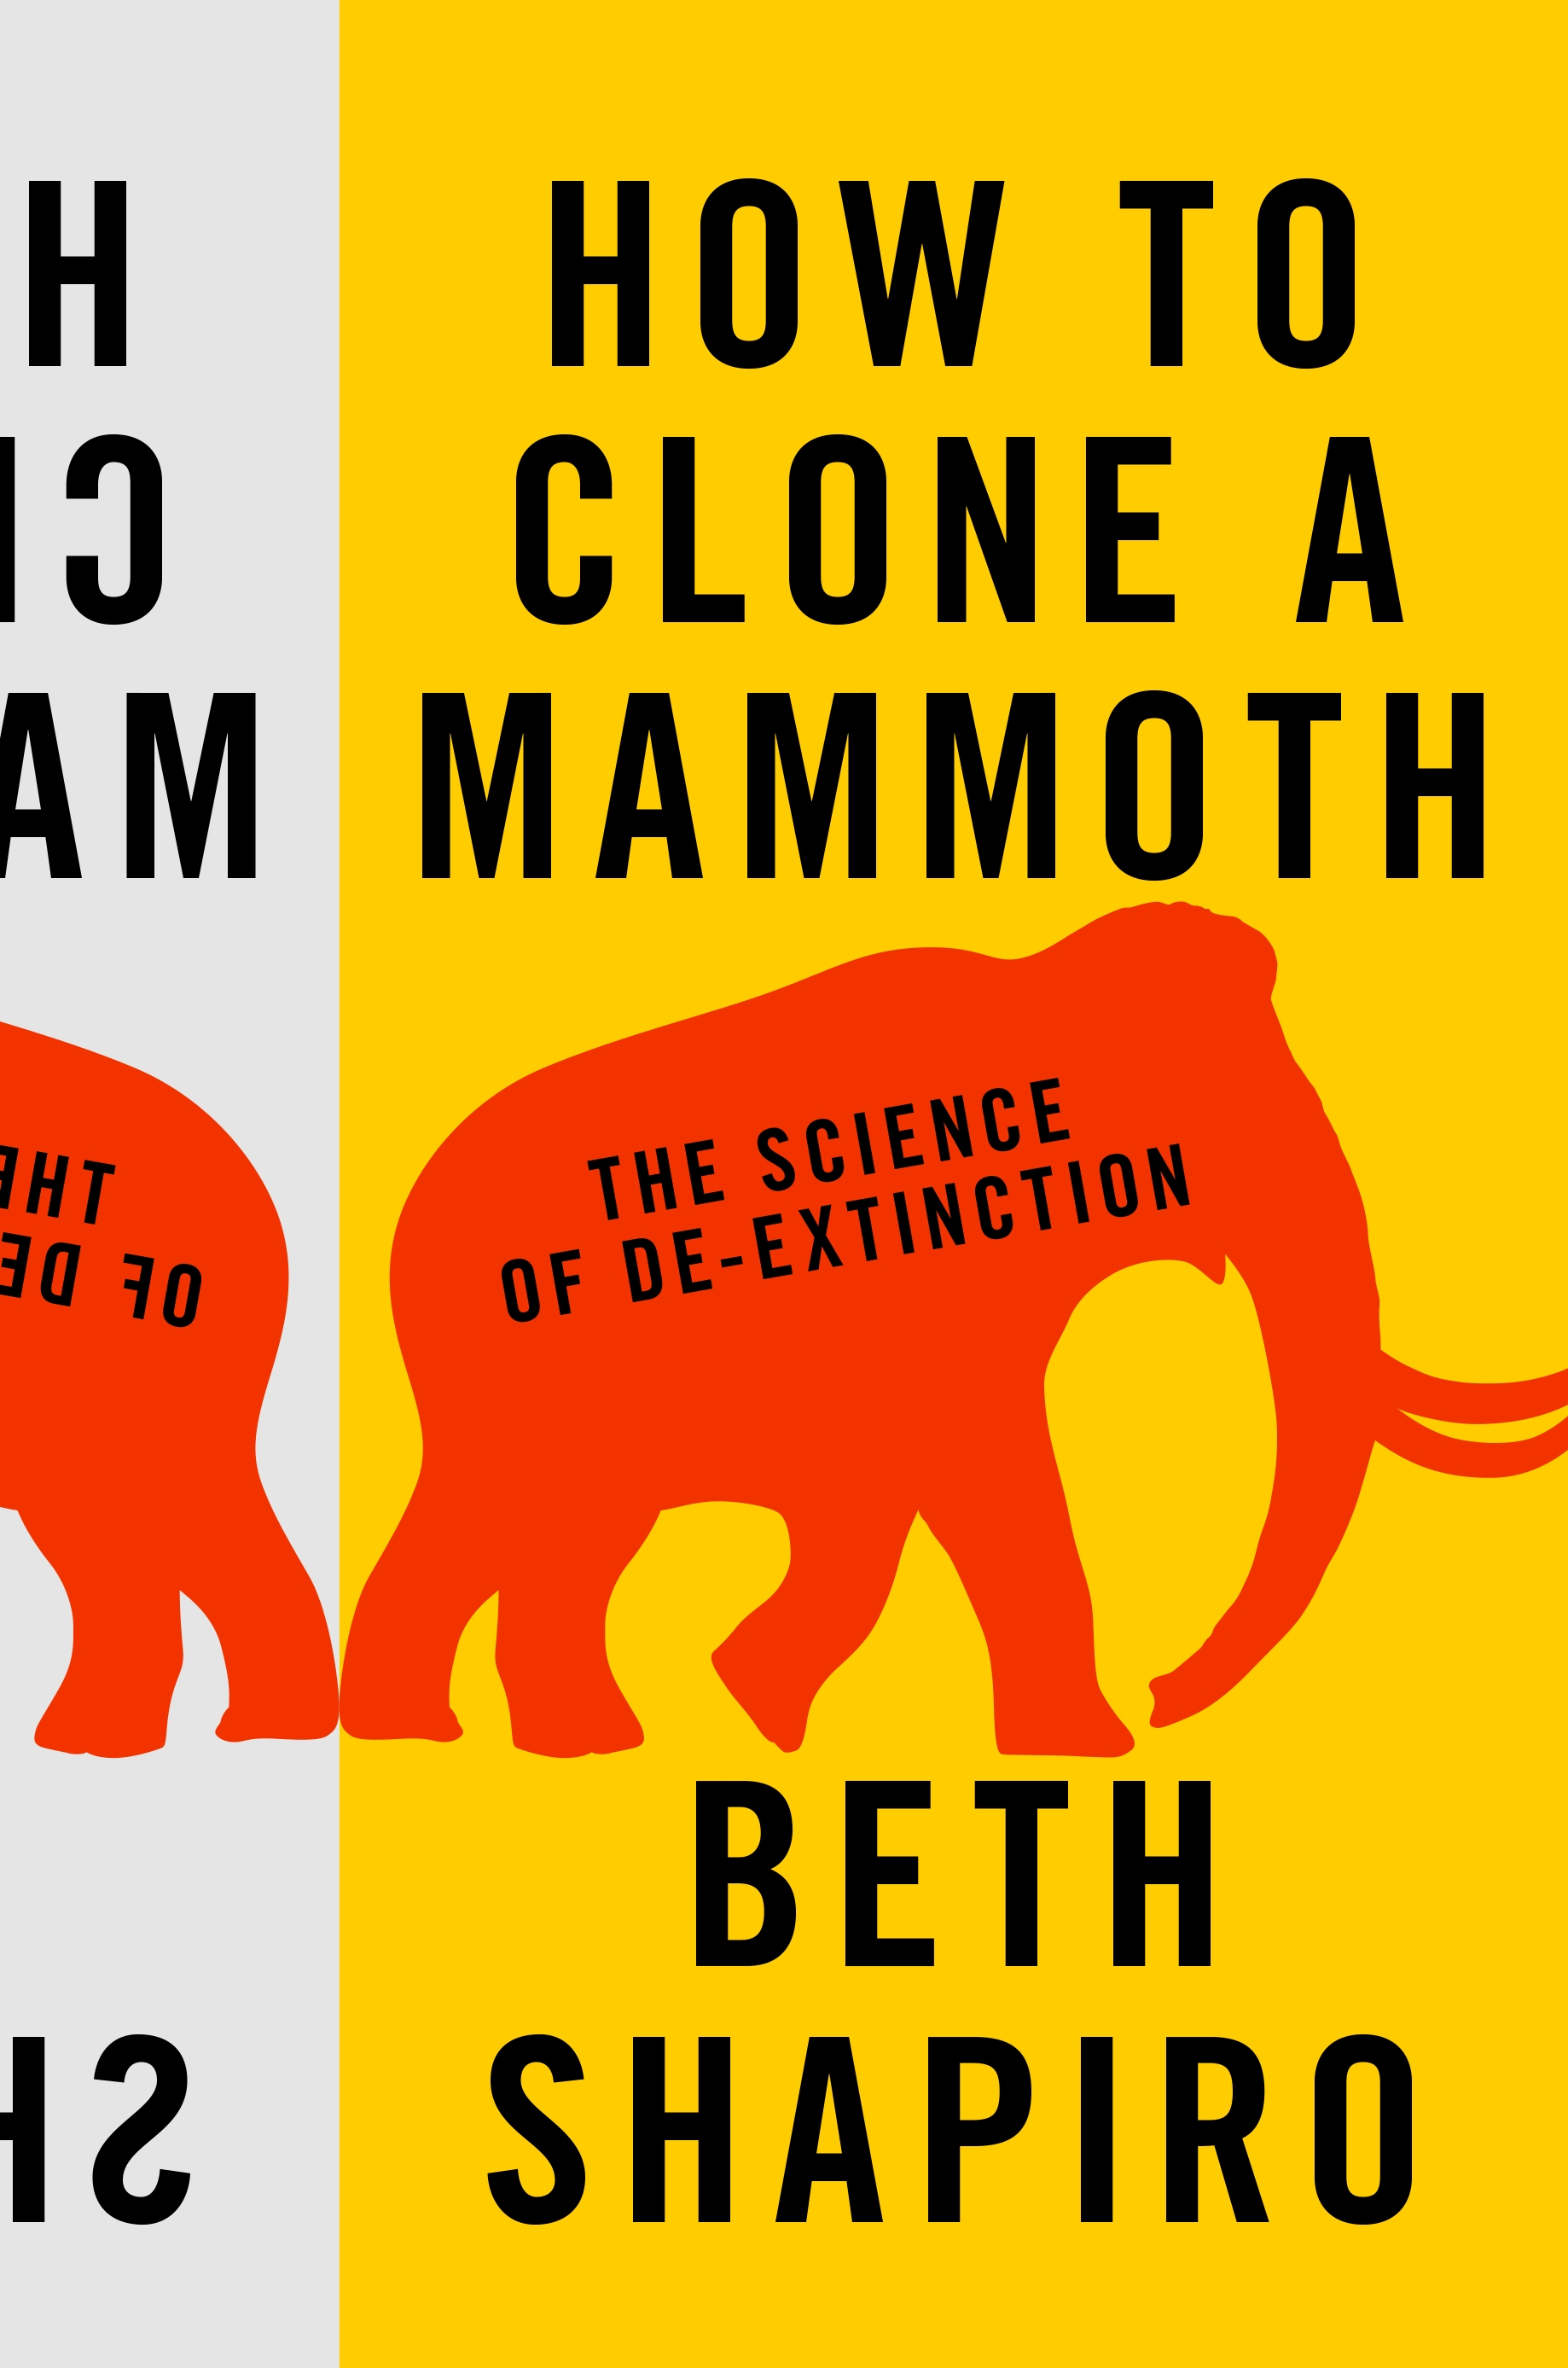 How to Clone a Mammoth.jpg